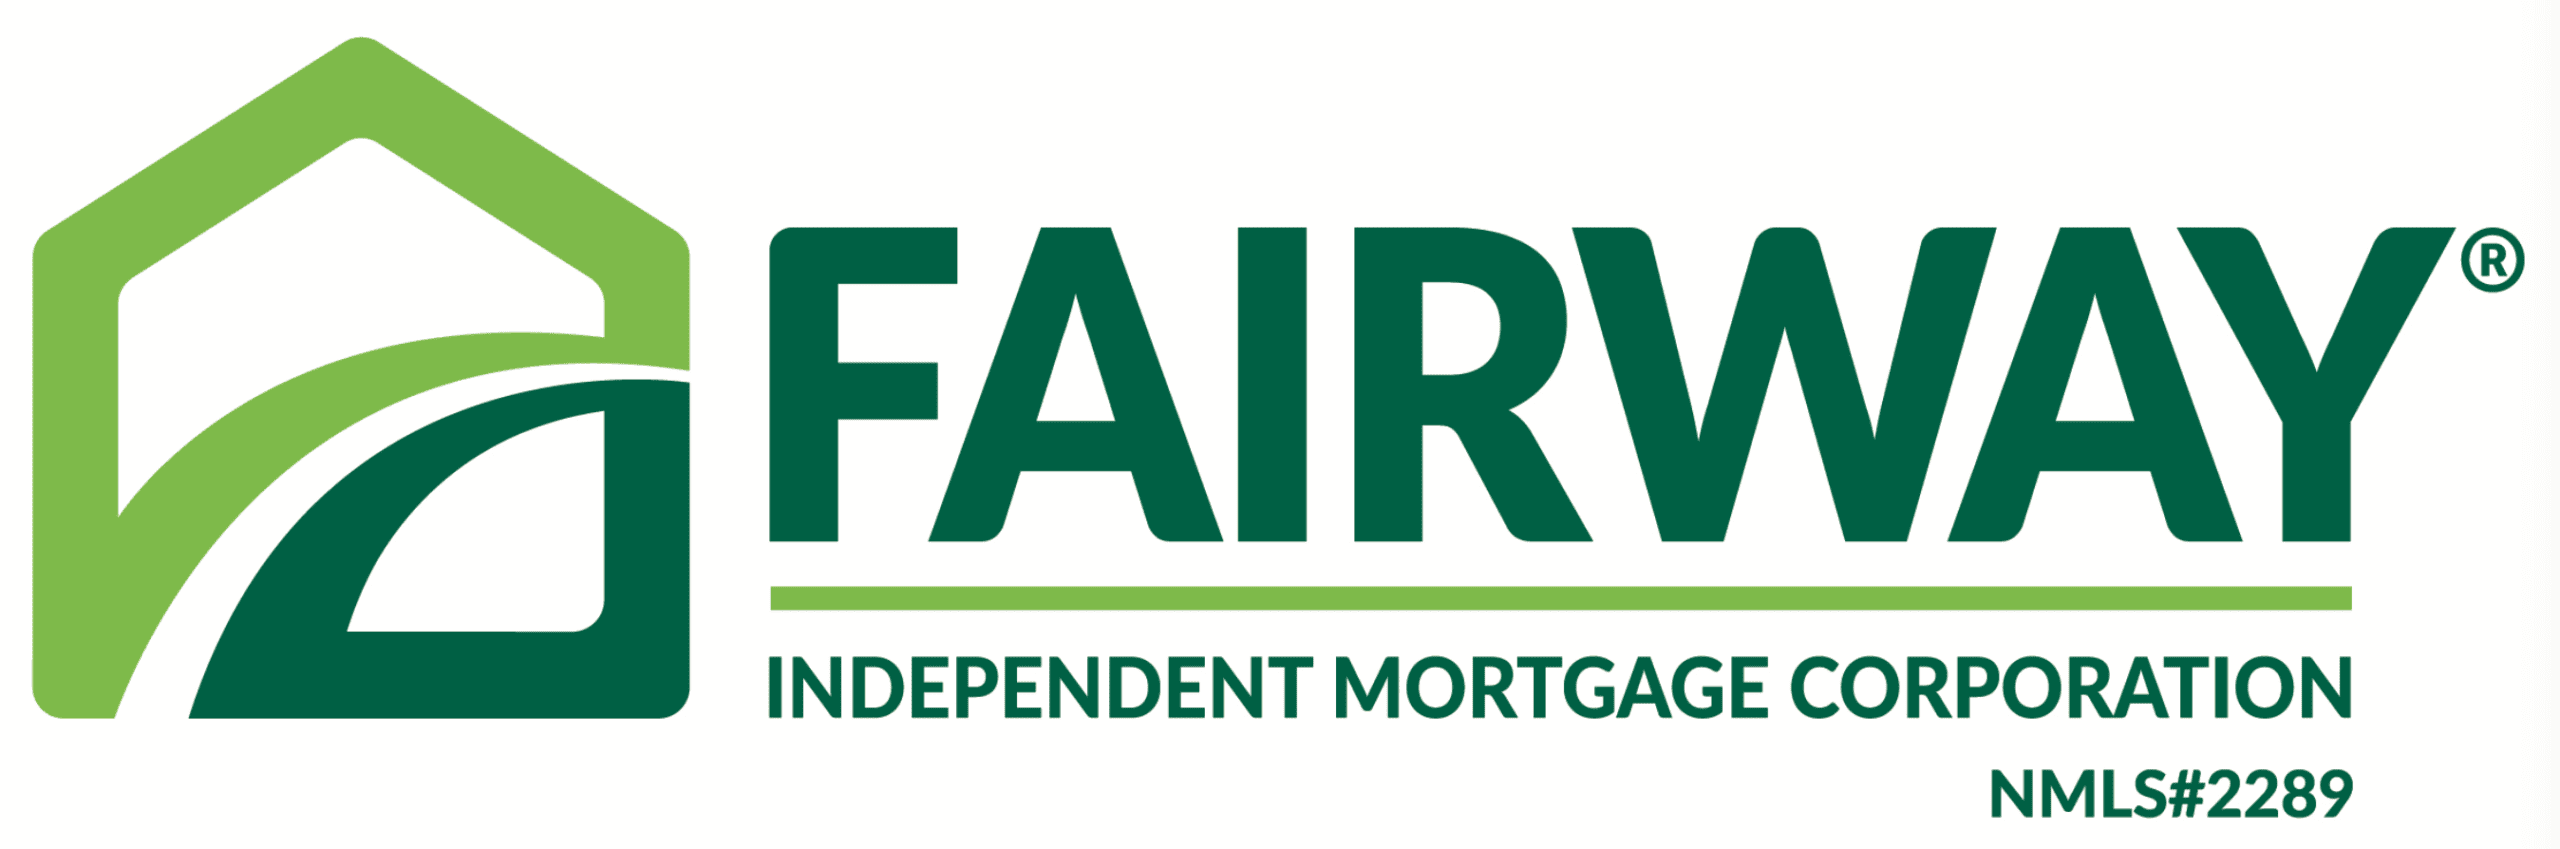 Fairway Mortgage Lender